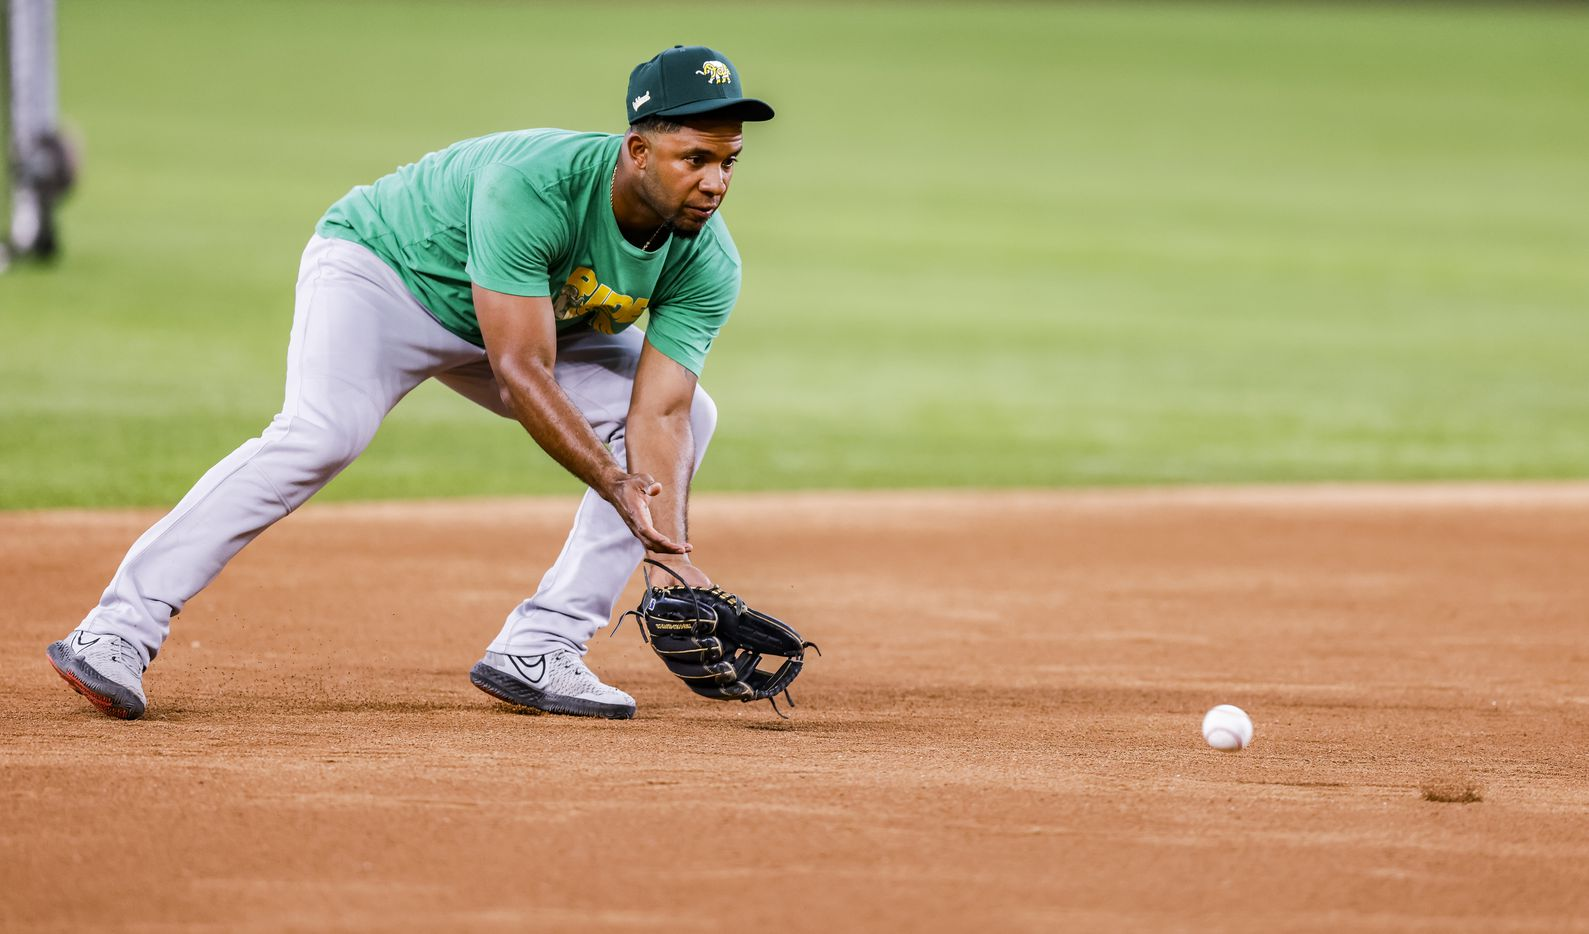 Oakland Athletics shortstop Elvis Andrus fields the ball during batting practice before a game against Texas Rangers in Arlington, Monday, June 21, 2021. (Brandon Wade/Special Contributor)